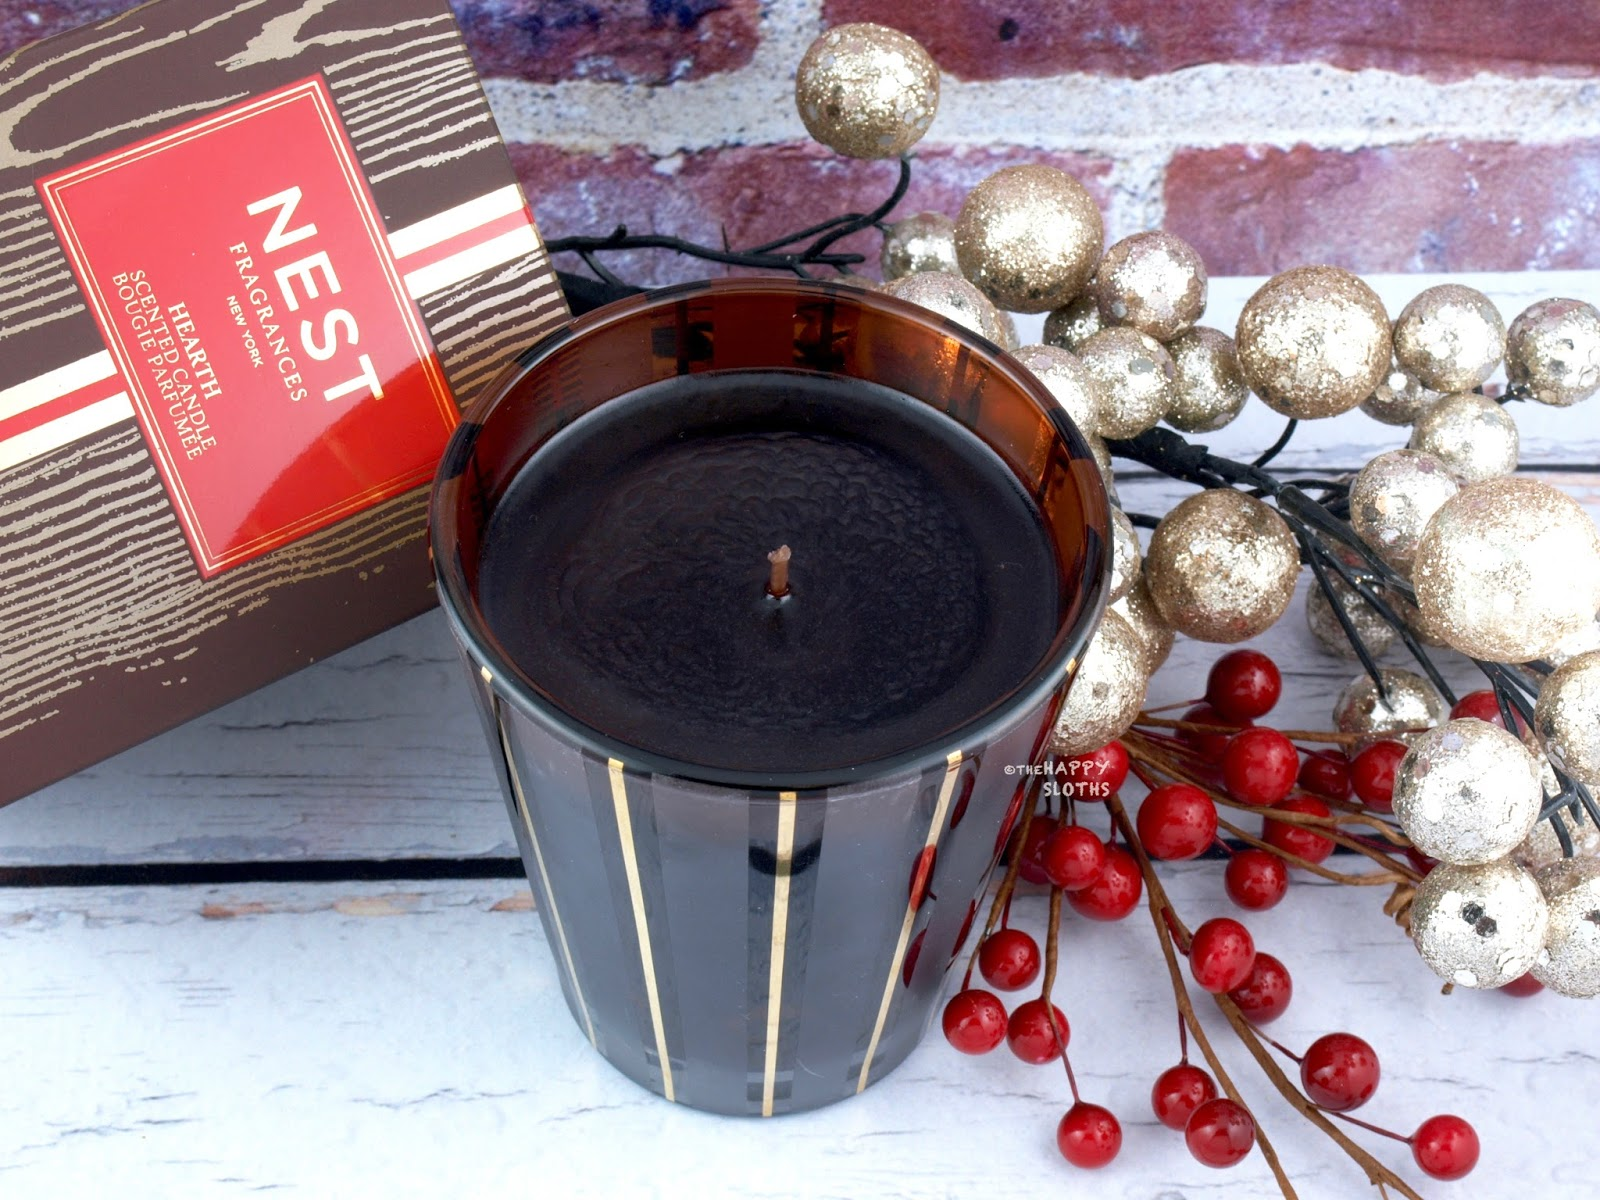 NEST Fragrances Hearth Candle: Review